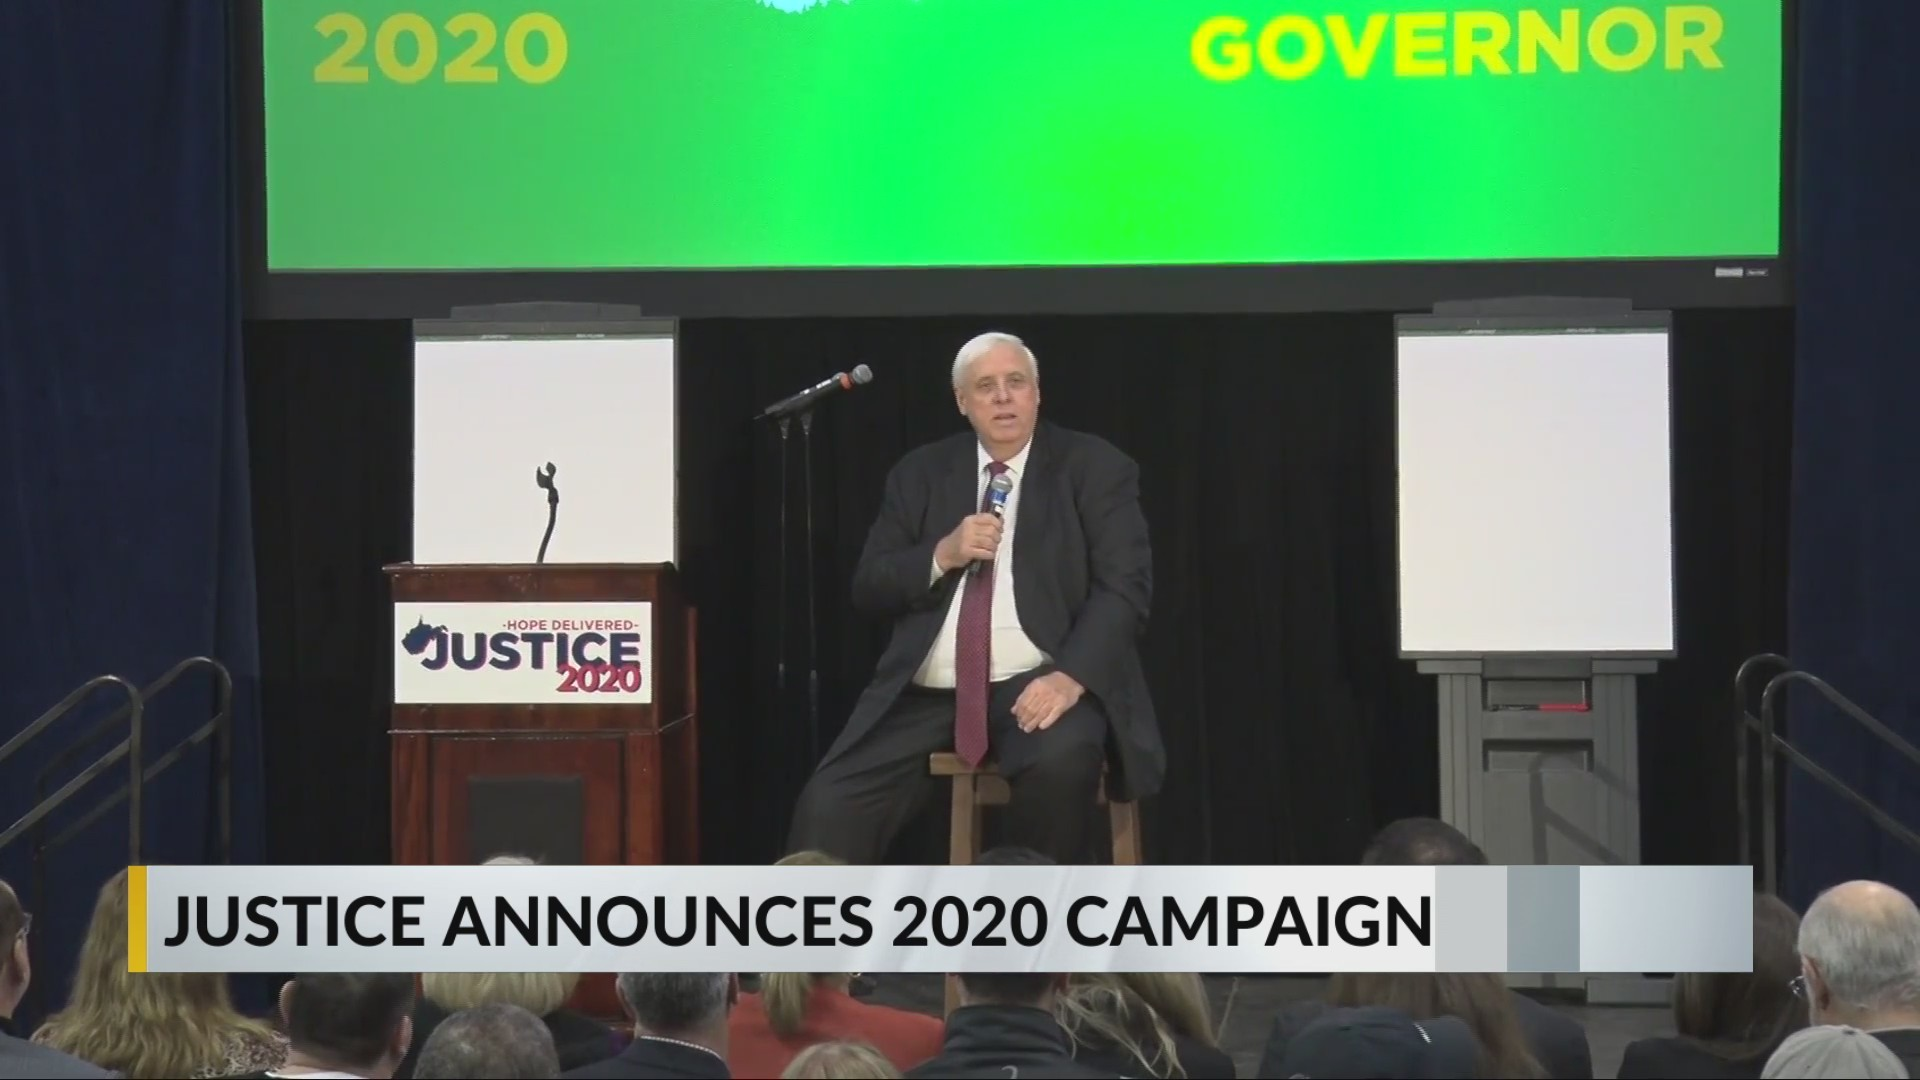 Gov. Jim Justice Announces he will run for Governor in 2020